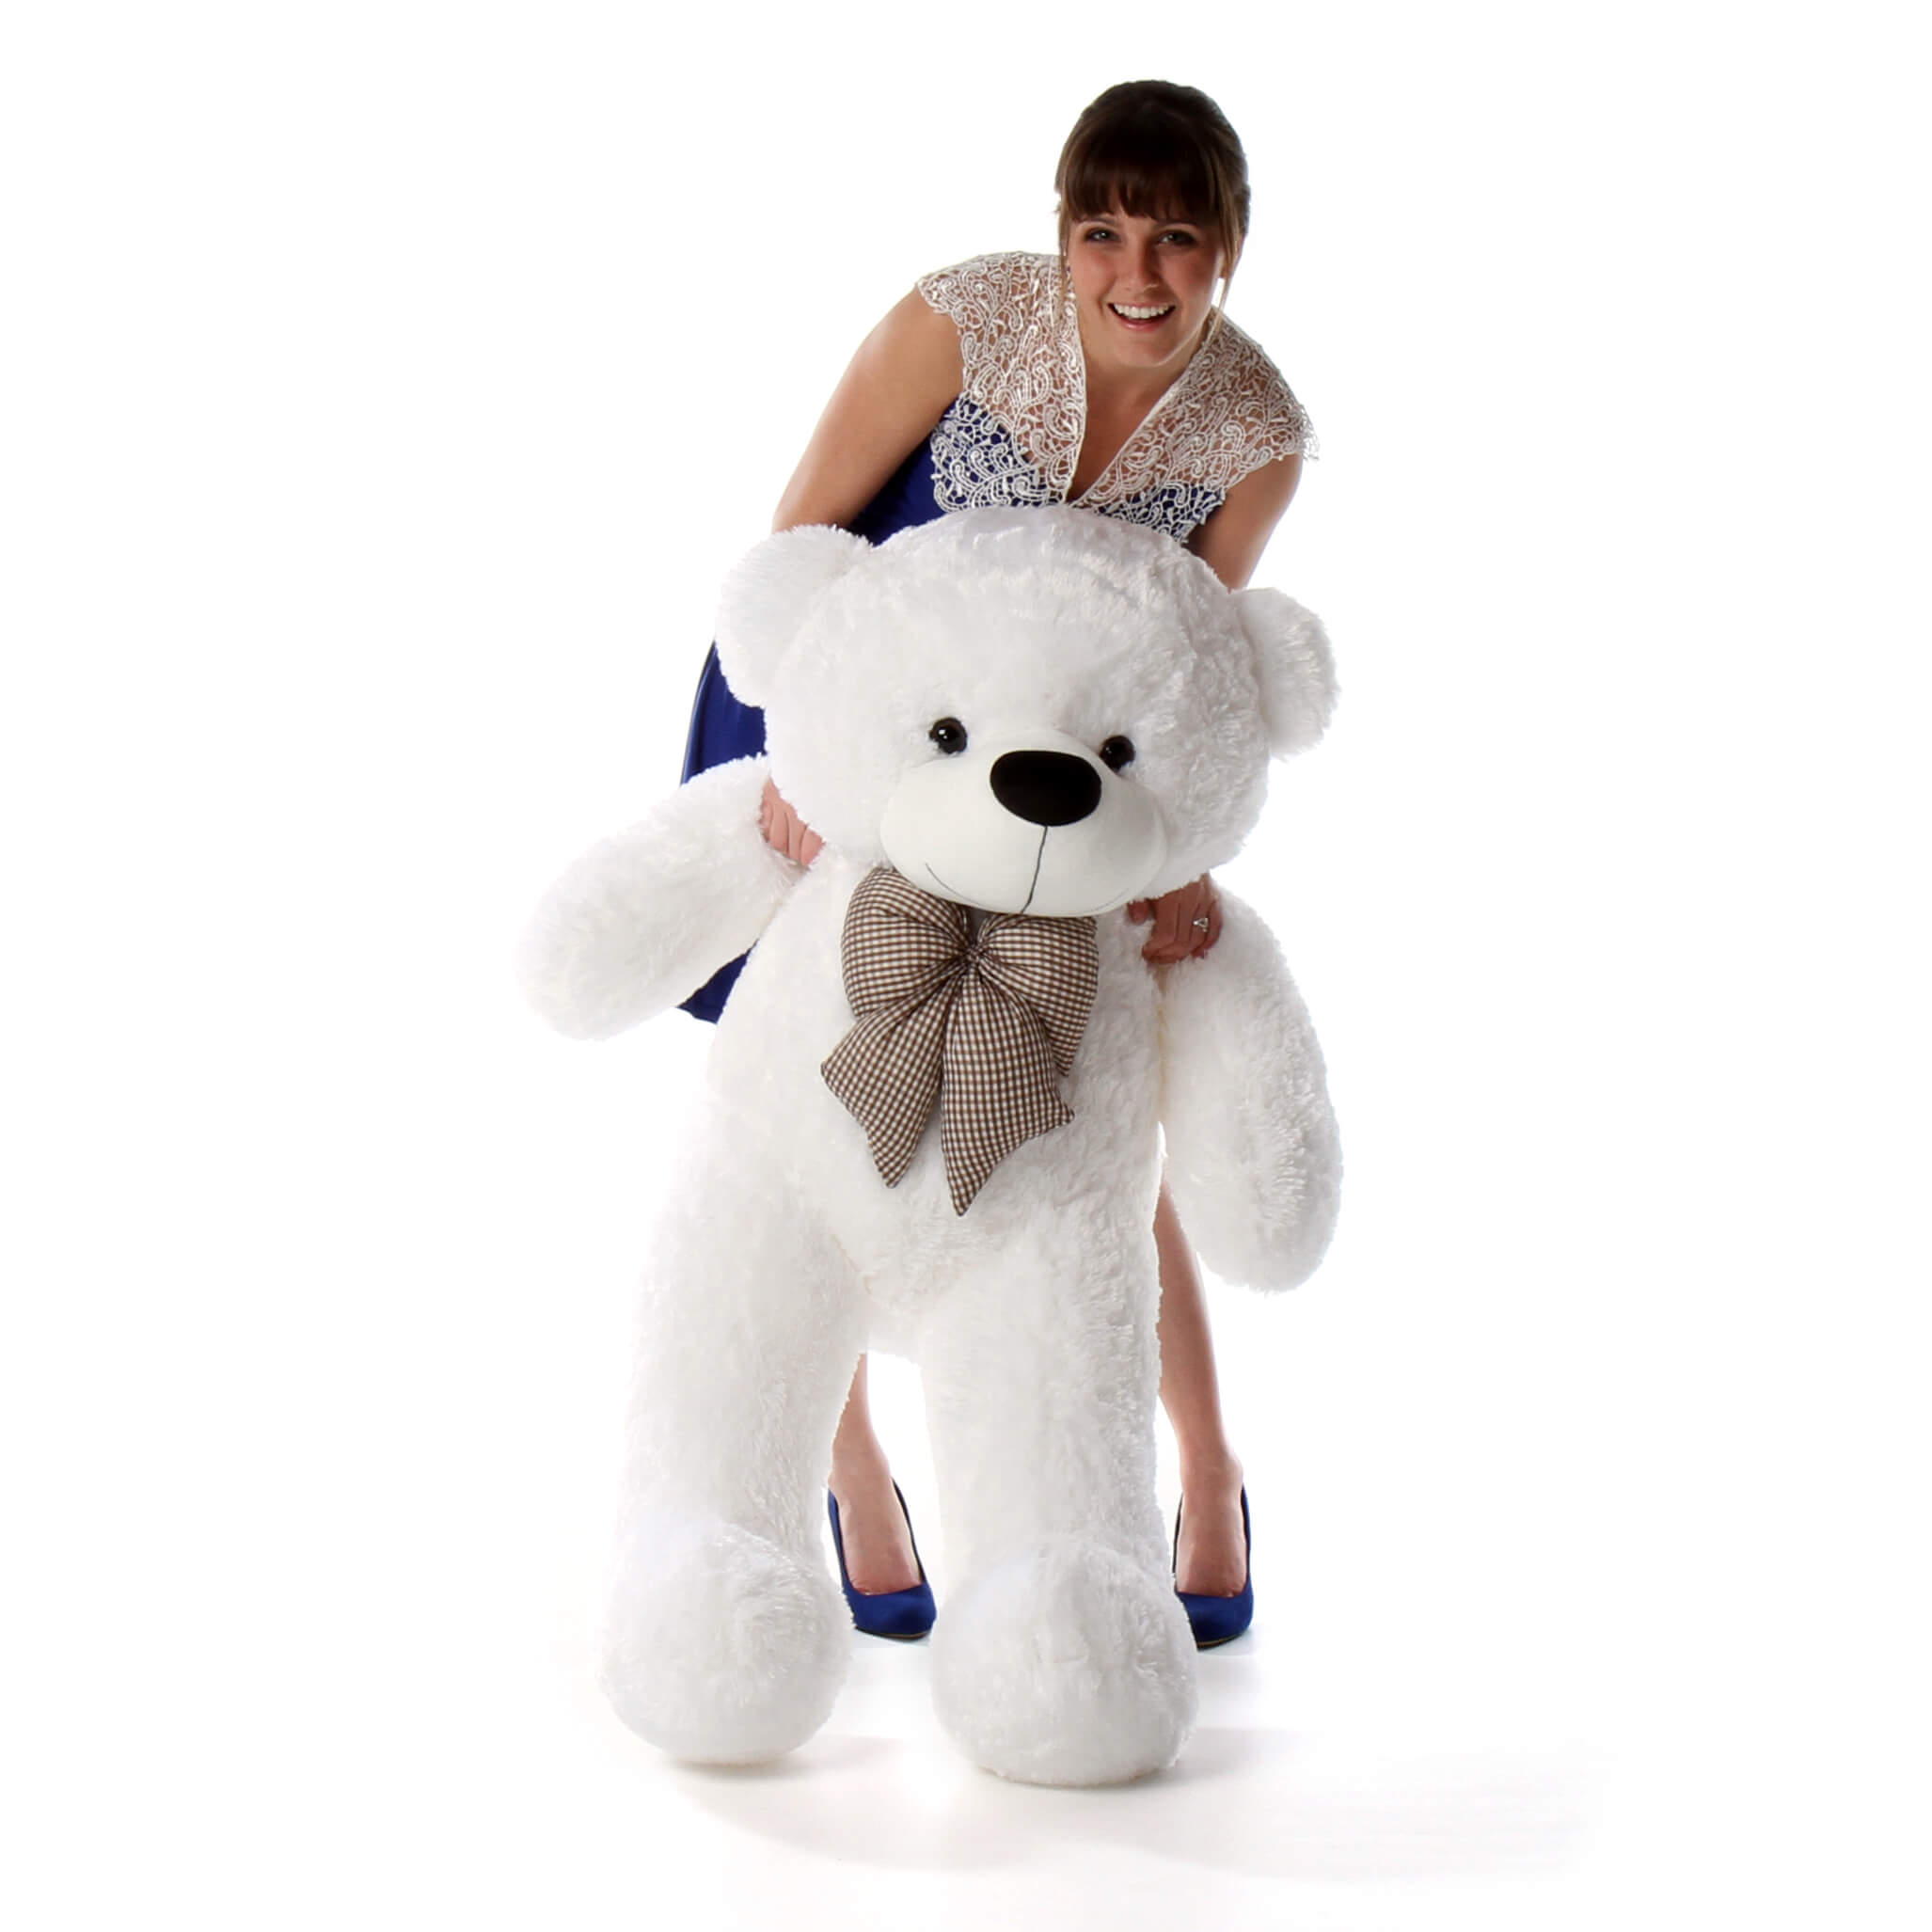 48in-life-size-teddy-bear-white-coco-cuddles-soft-gift-1.jpg